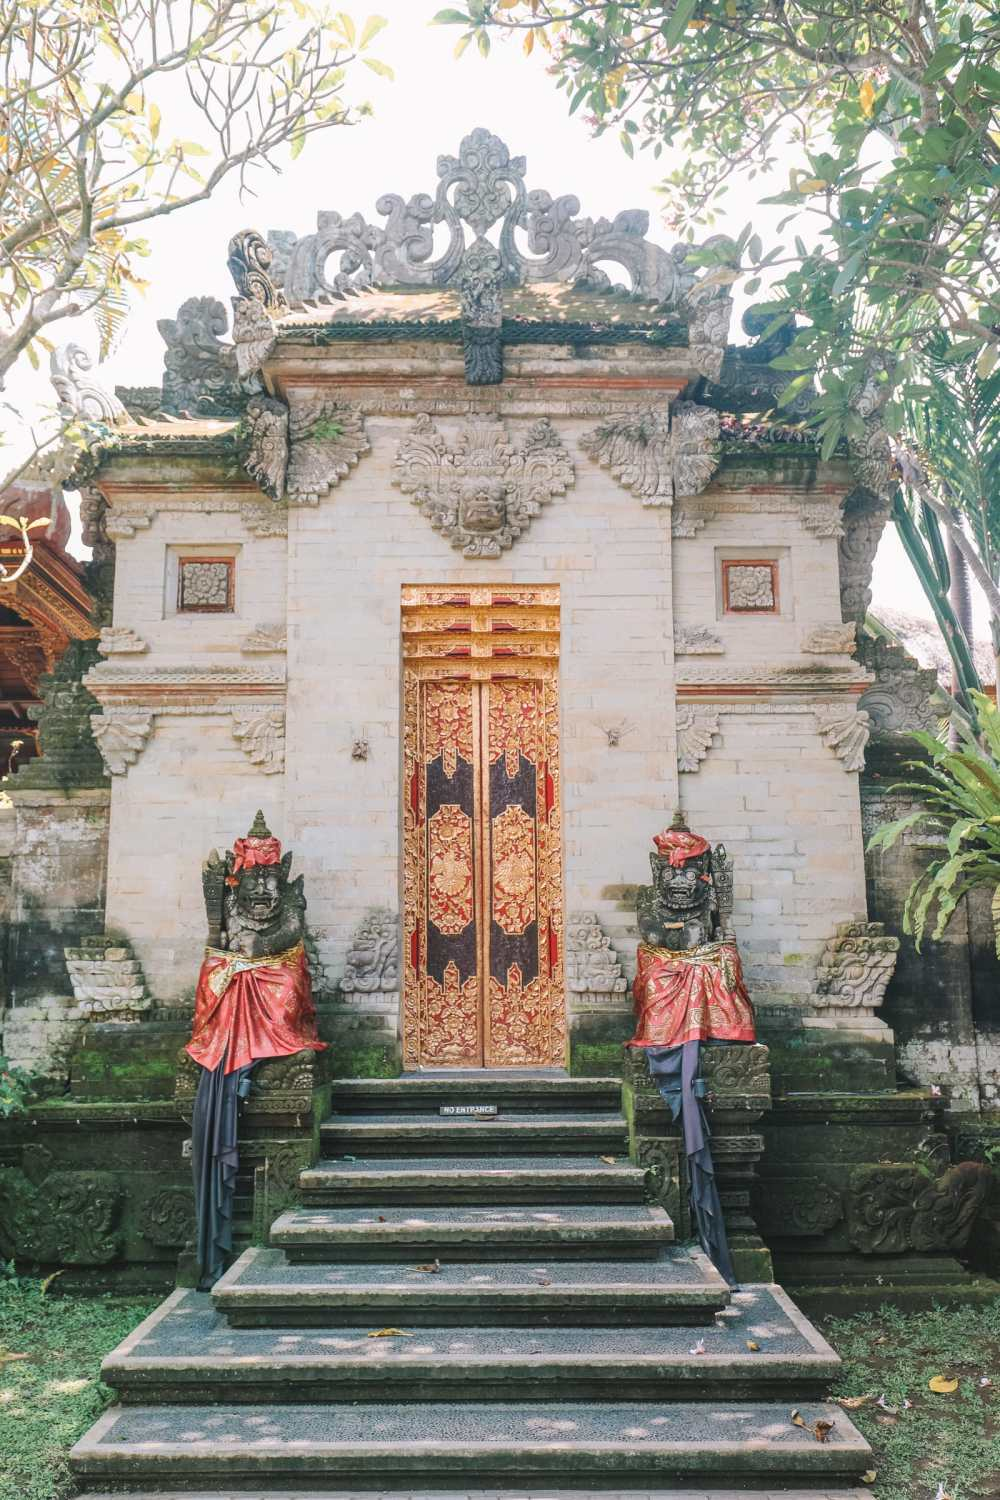 Bali Travel Diary - Ubud Palace, Uluwatu and Tanah Lot (4)